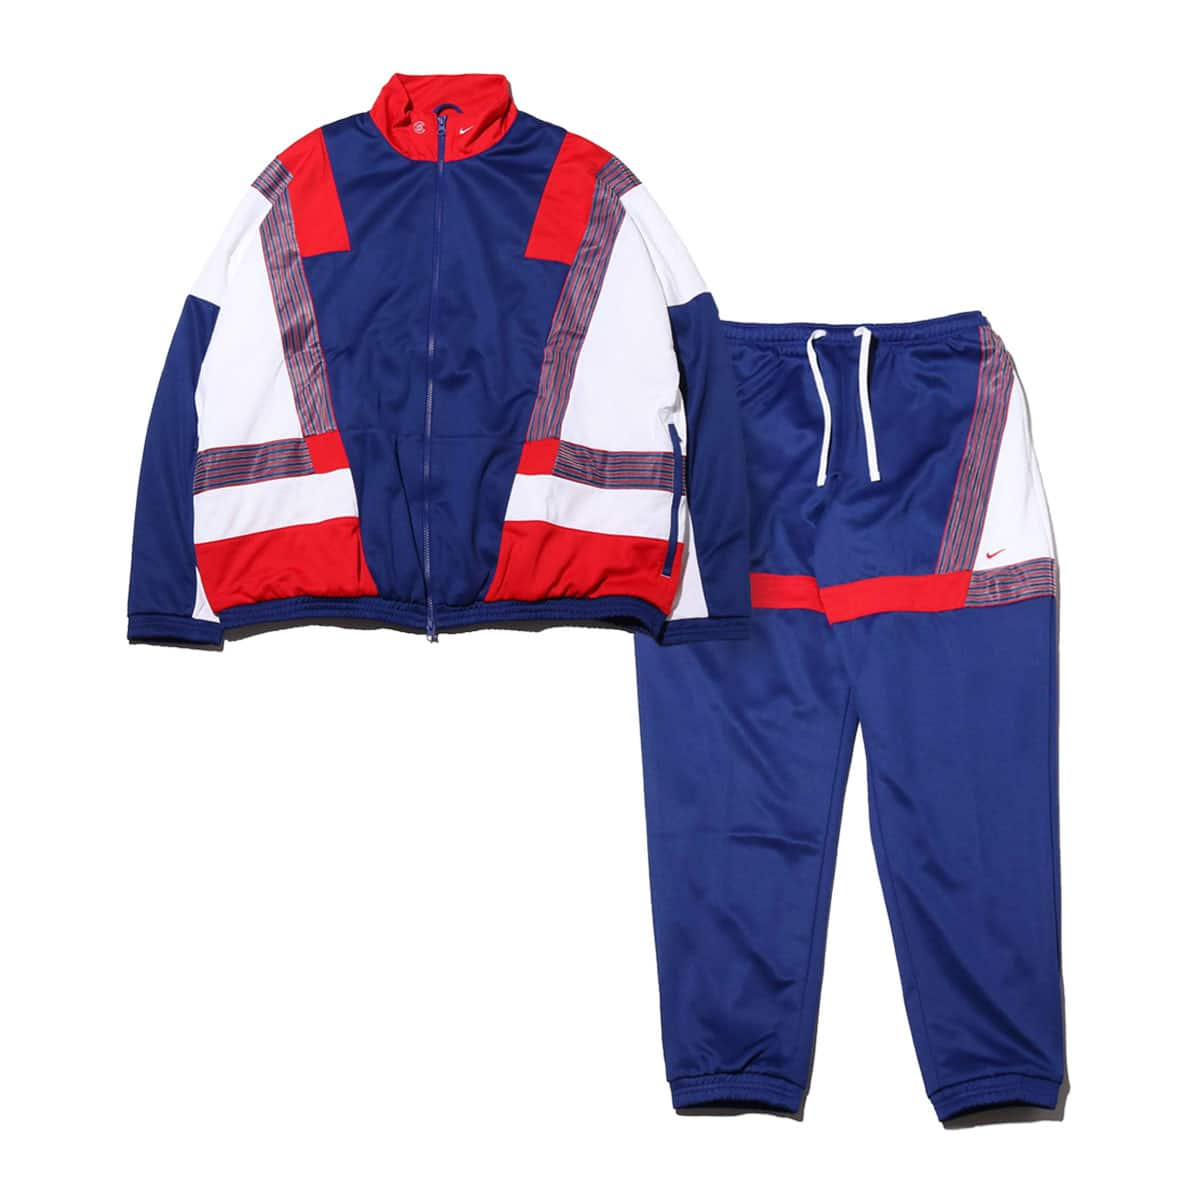 NIKE M NRG CHEN TRK SUIT PK DEEP ROYAL BLUE/UNIVERSITY RED/WHITE 19SU-S_photo_large